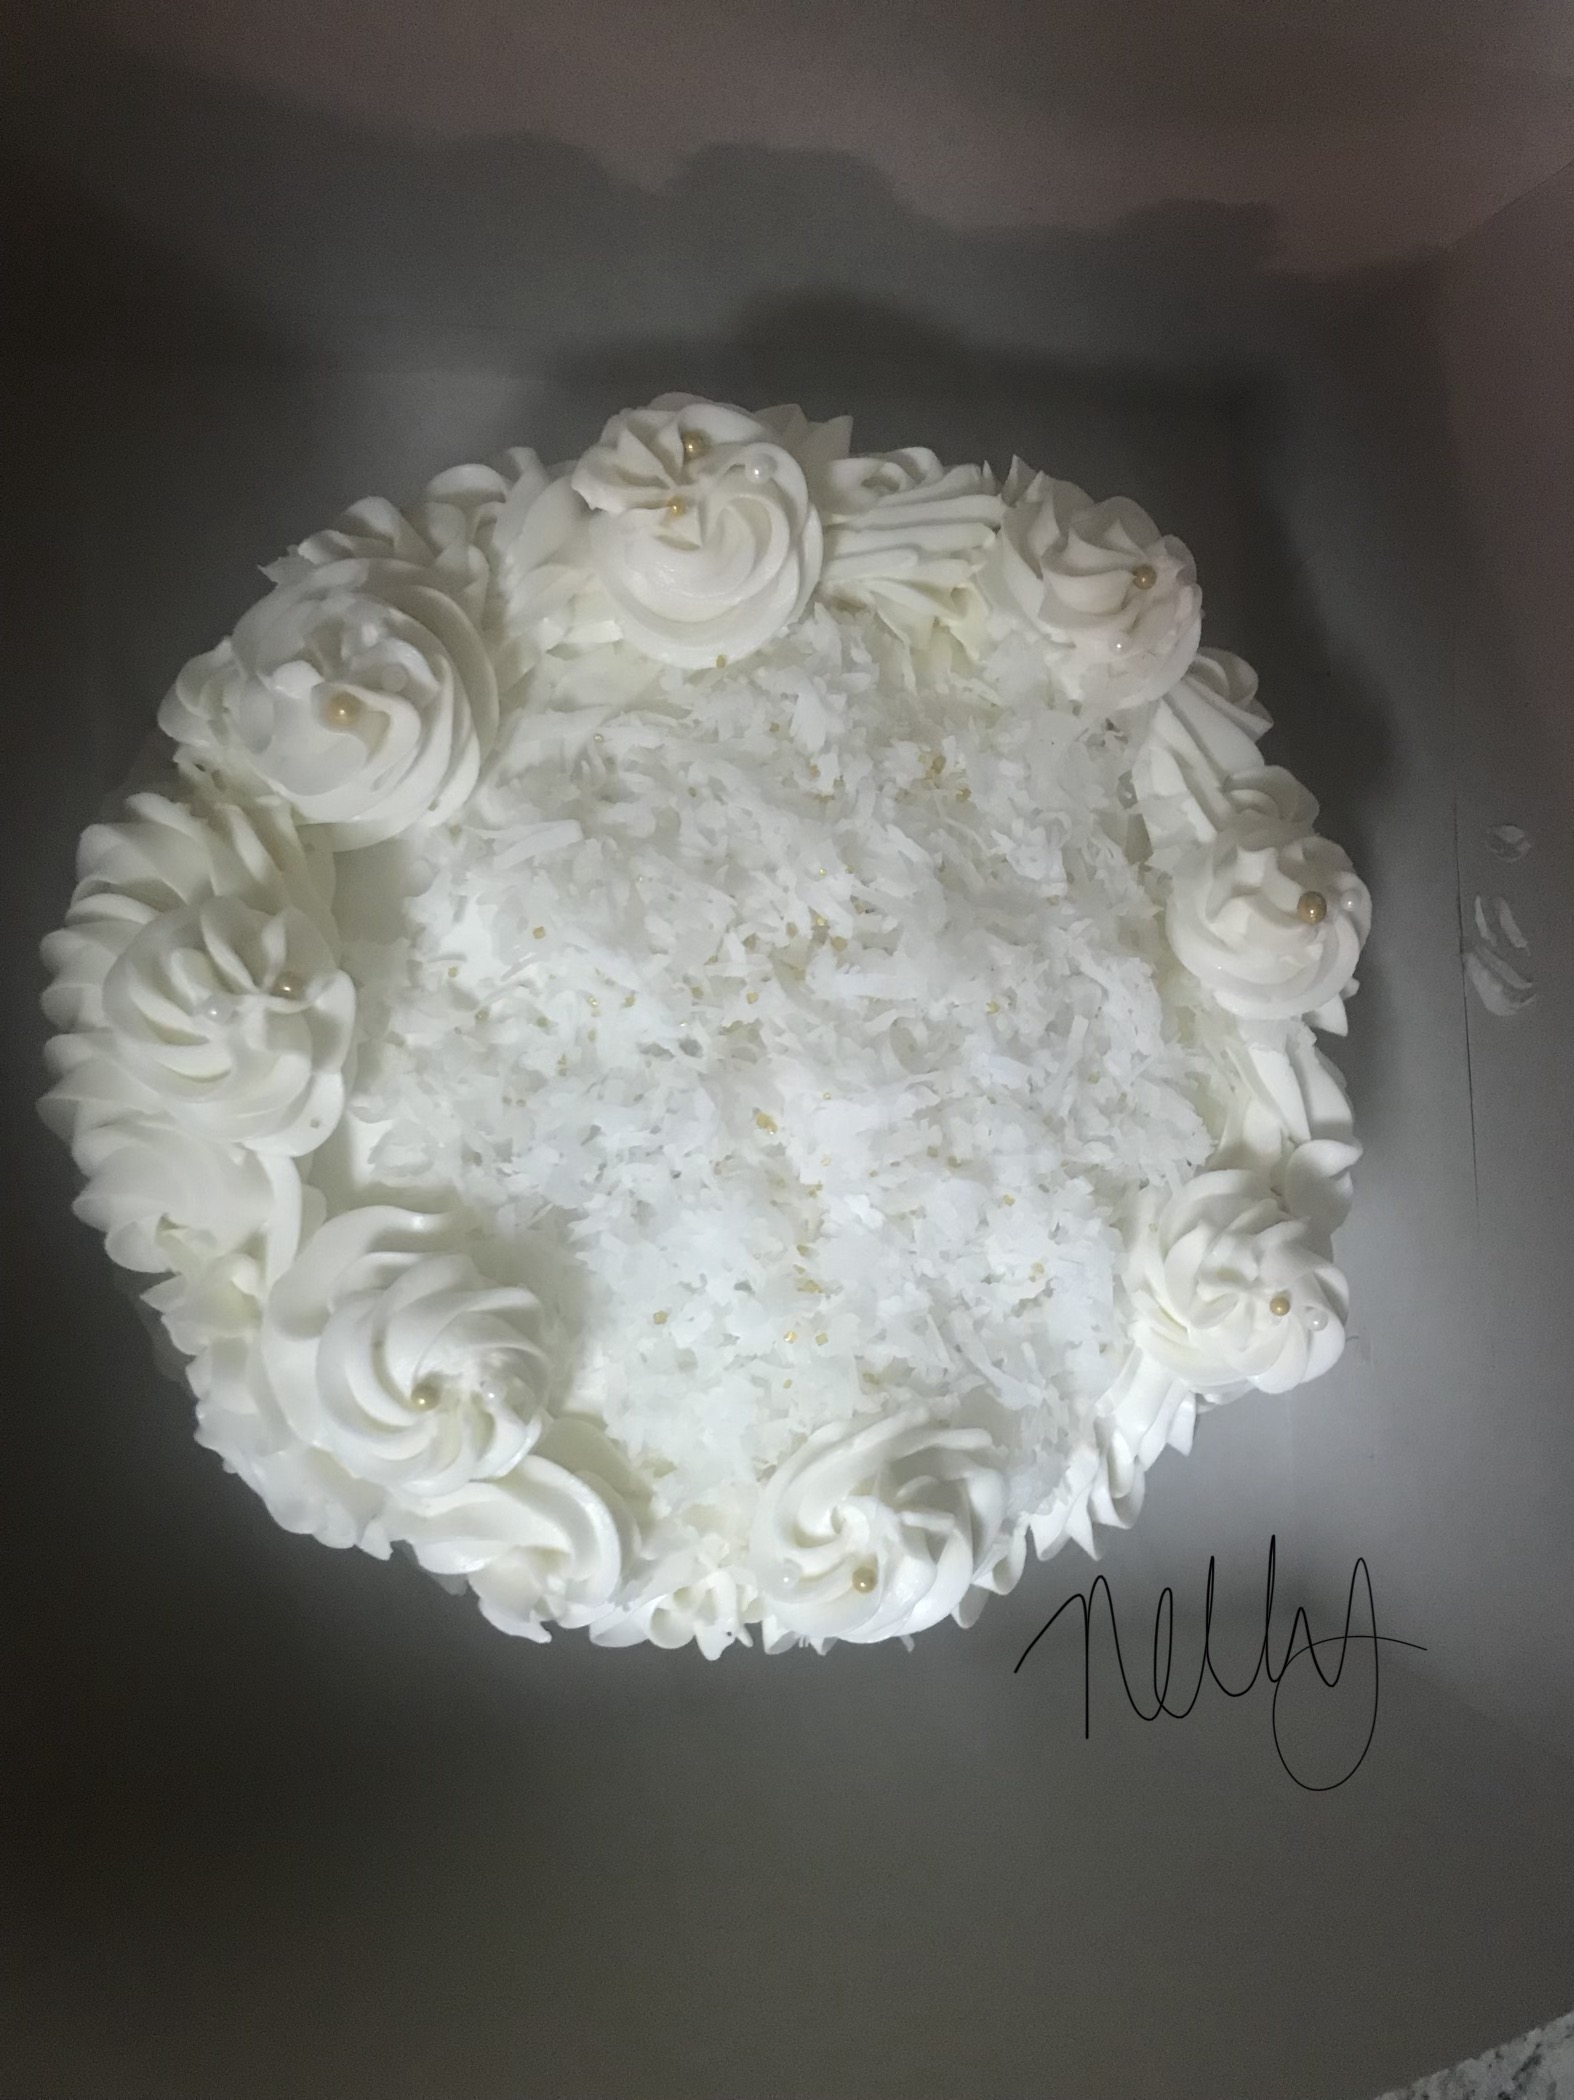 Buttercream-Coconut Cake Icing